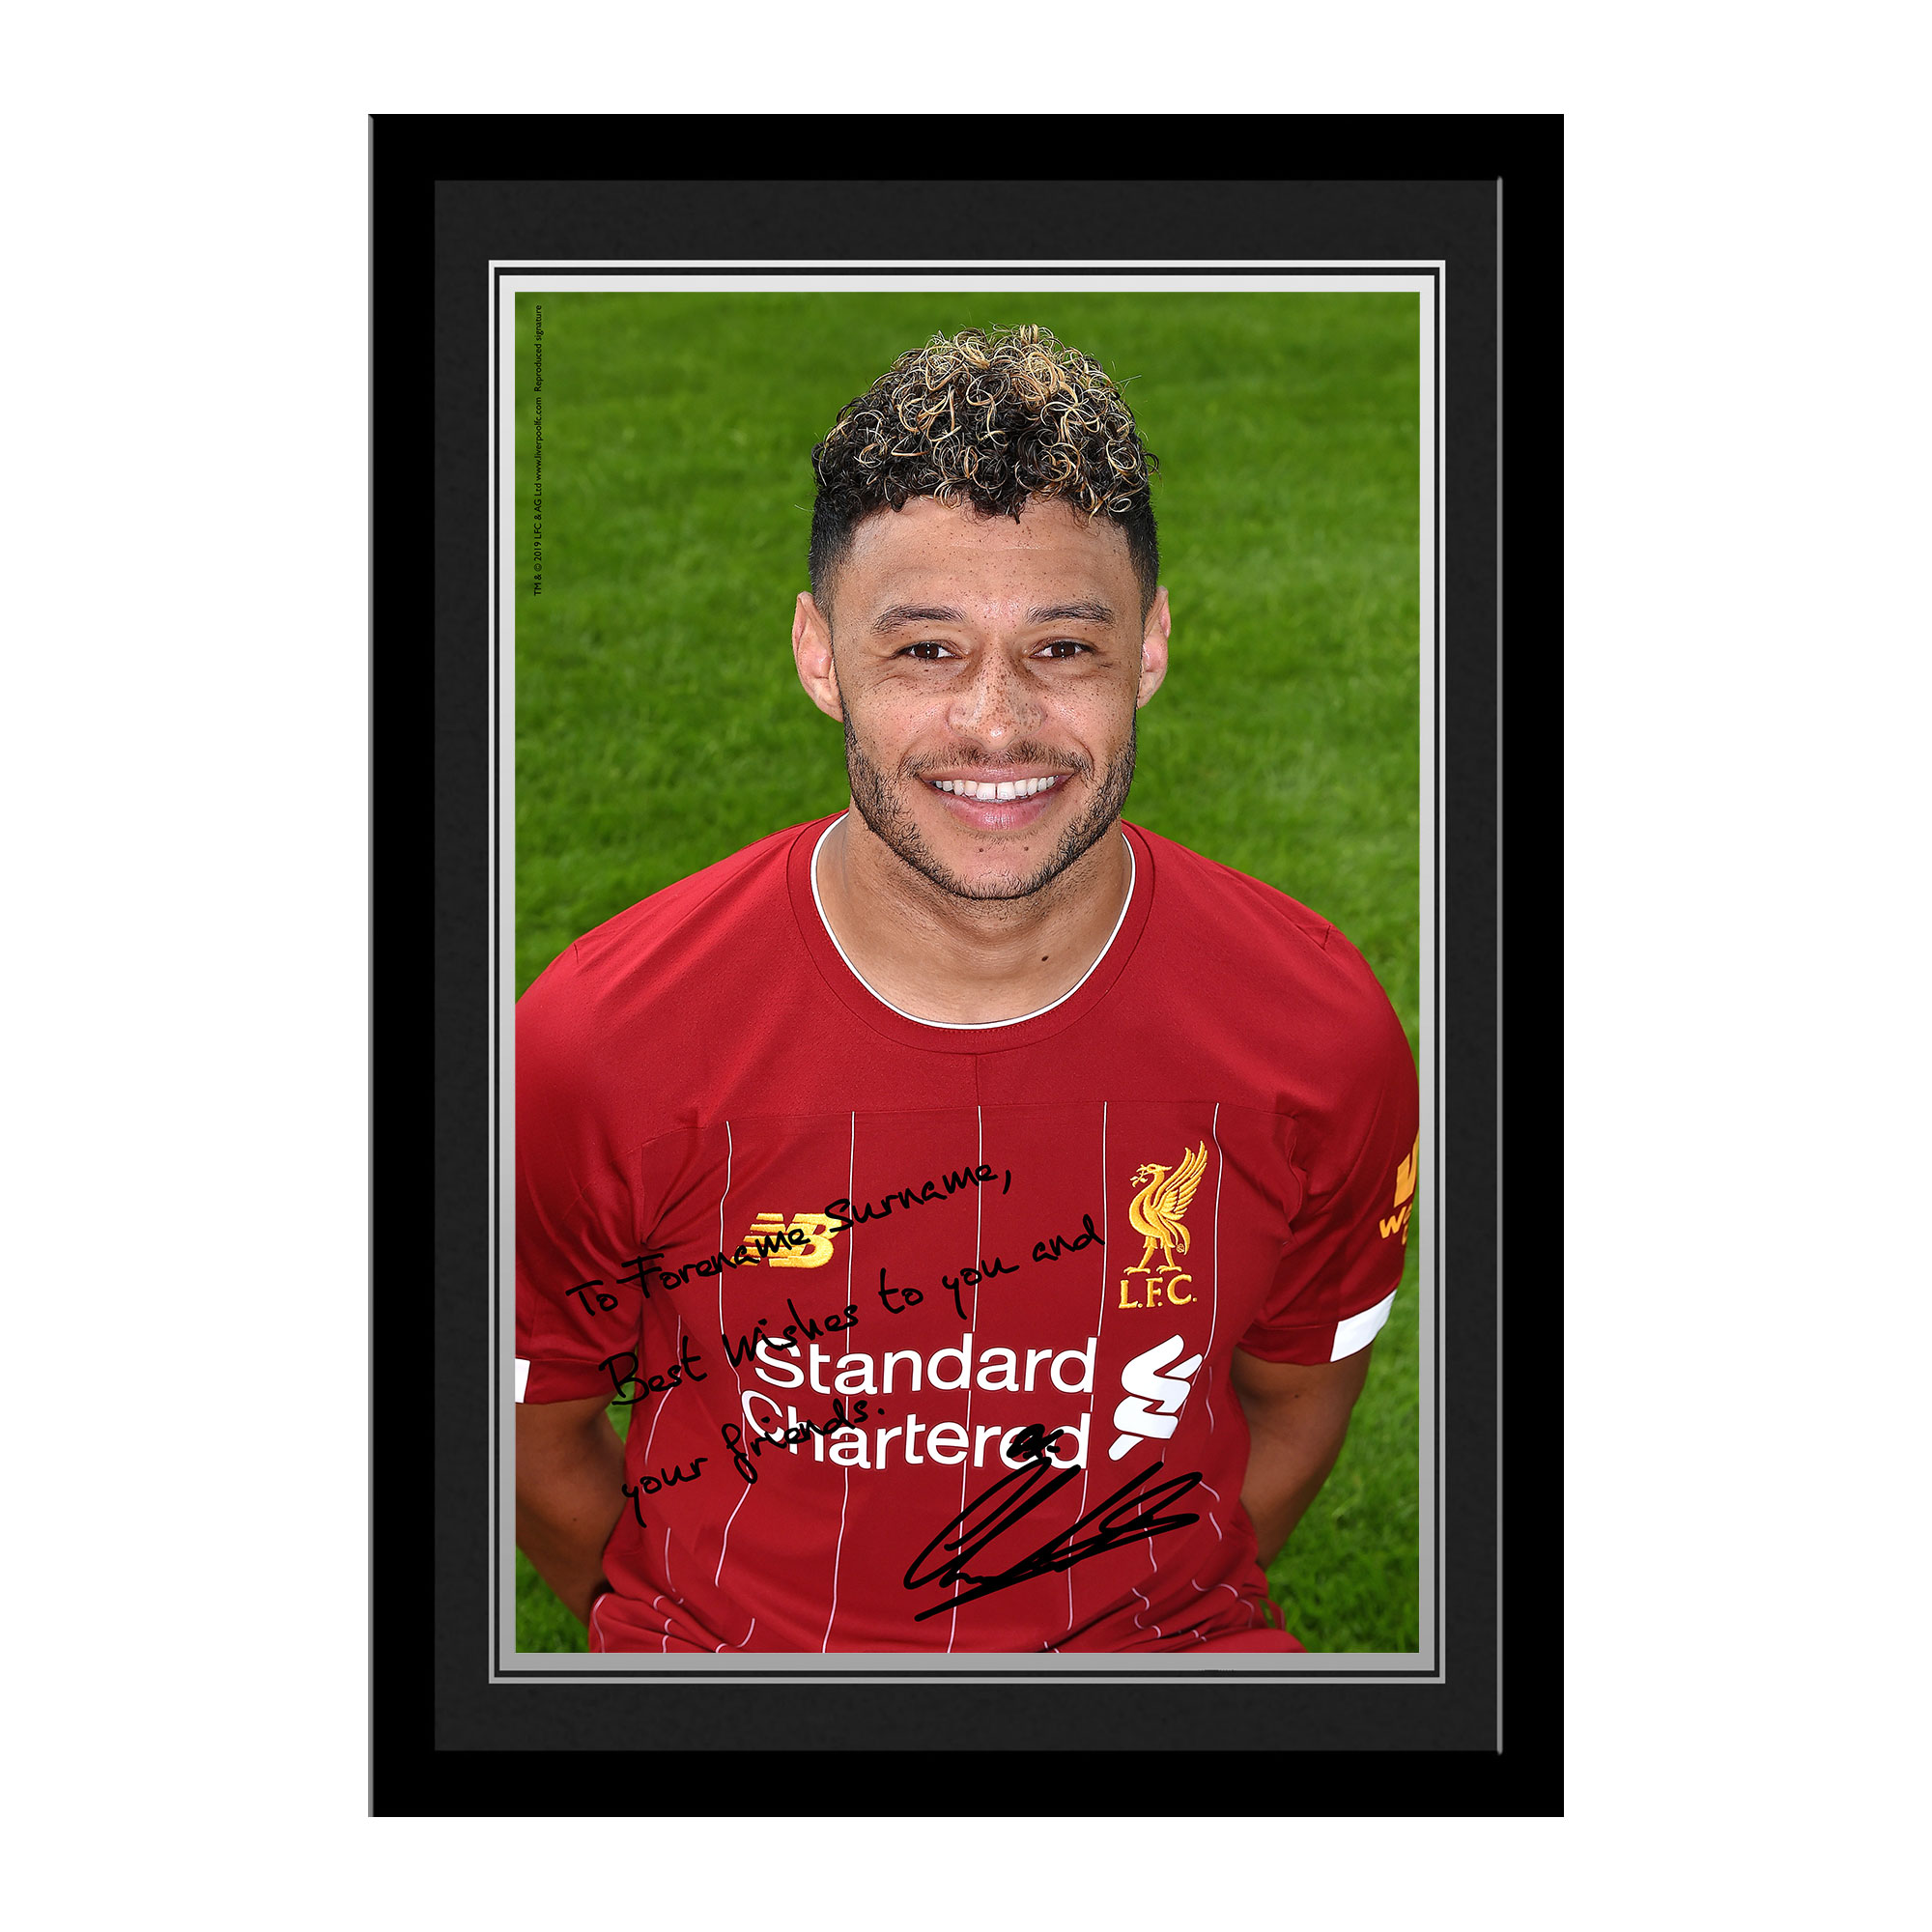 Liverpool FC Oxlade-Chamberlain Autograph Photo Framed